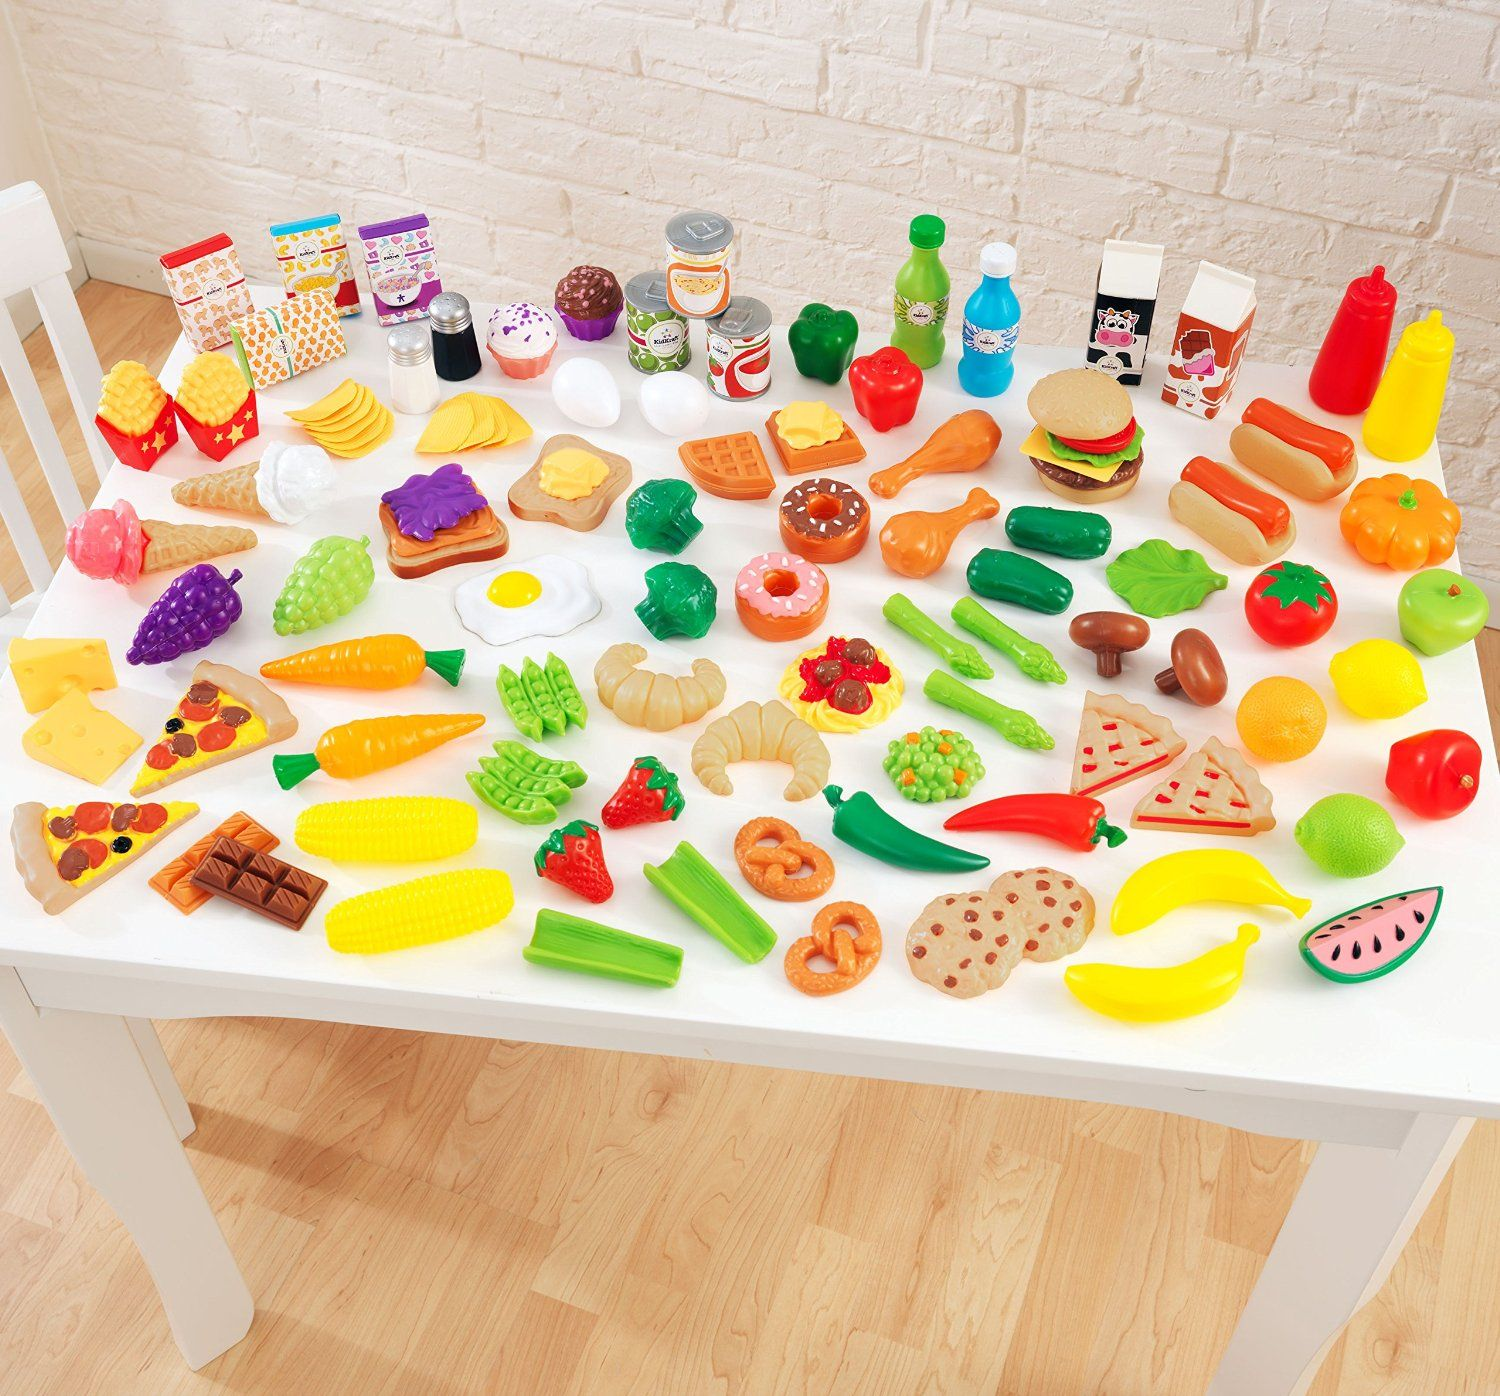 KidKraft Deluxe Tasty Treat Pretend Play Food Set 115 pieces